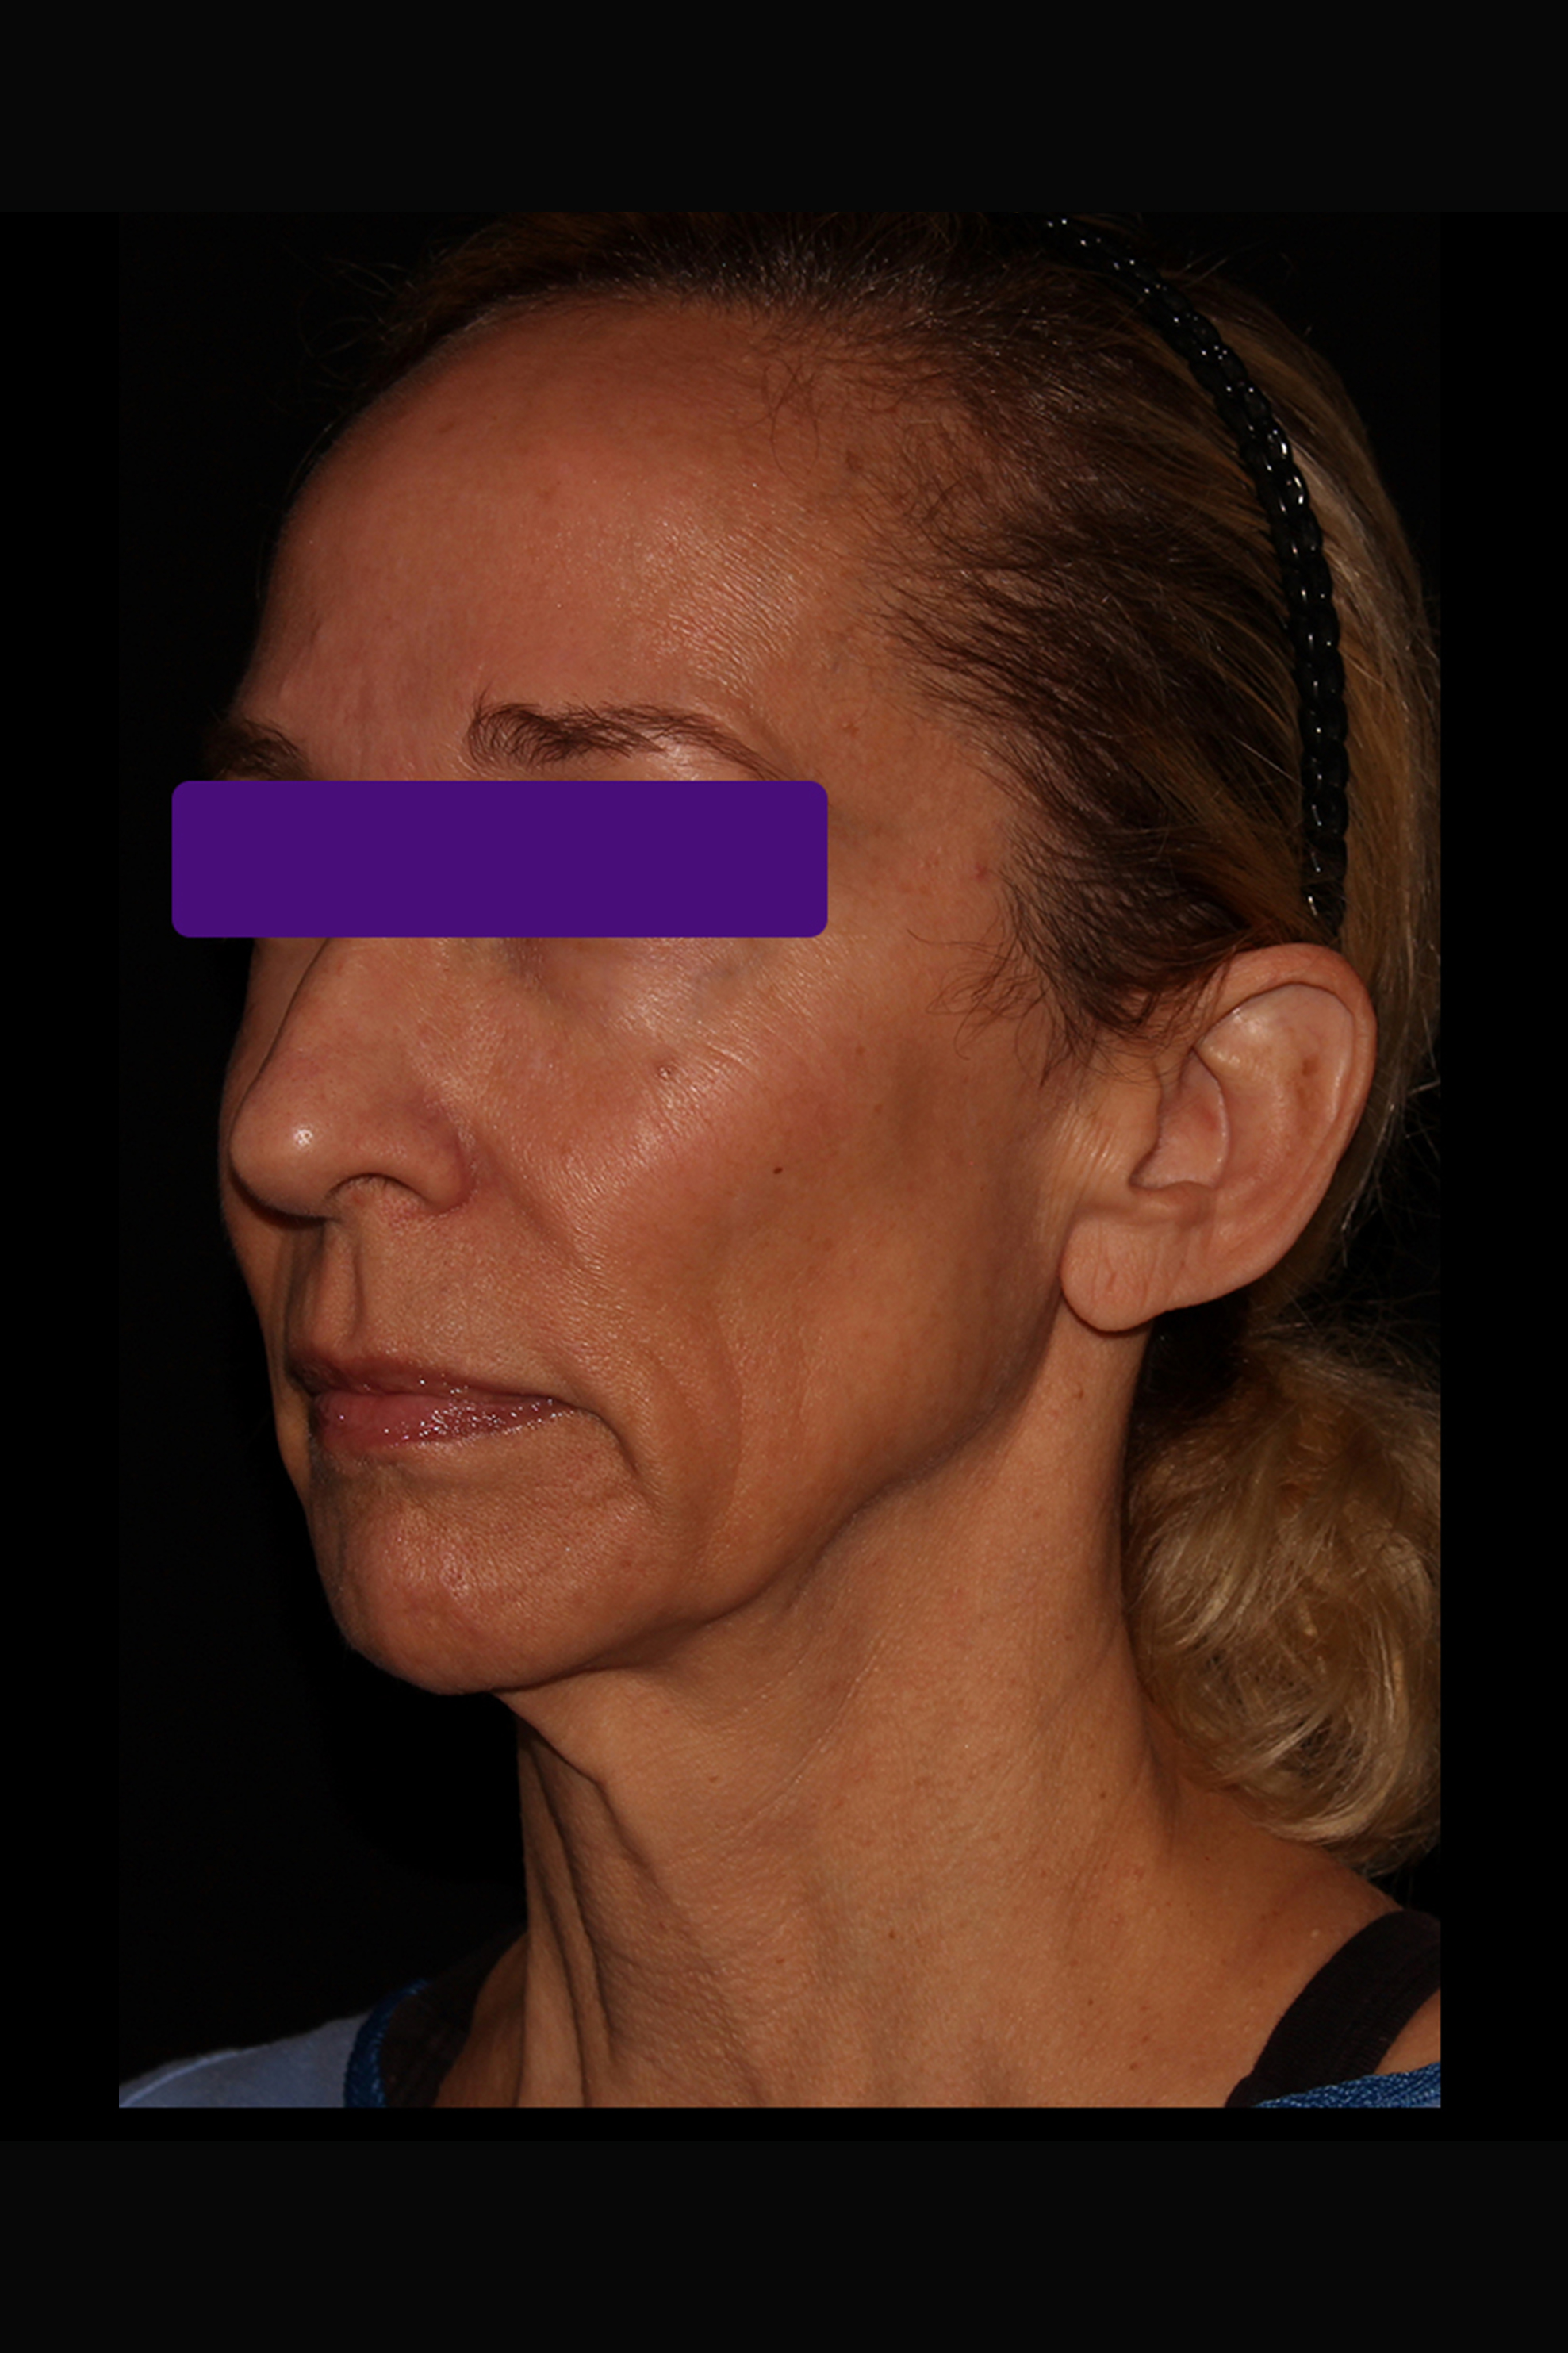 Before Facelift - Less than 6 months post-op